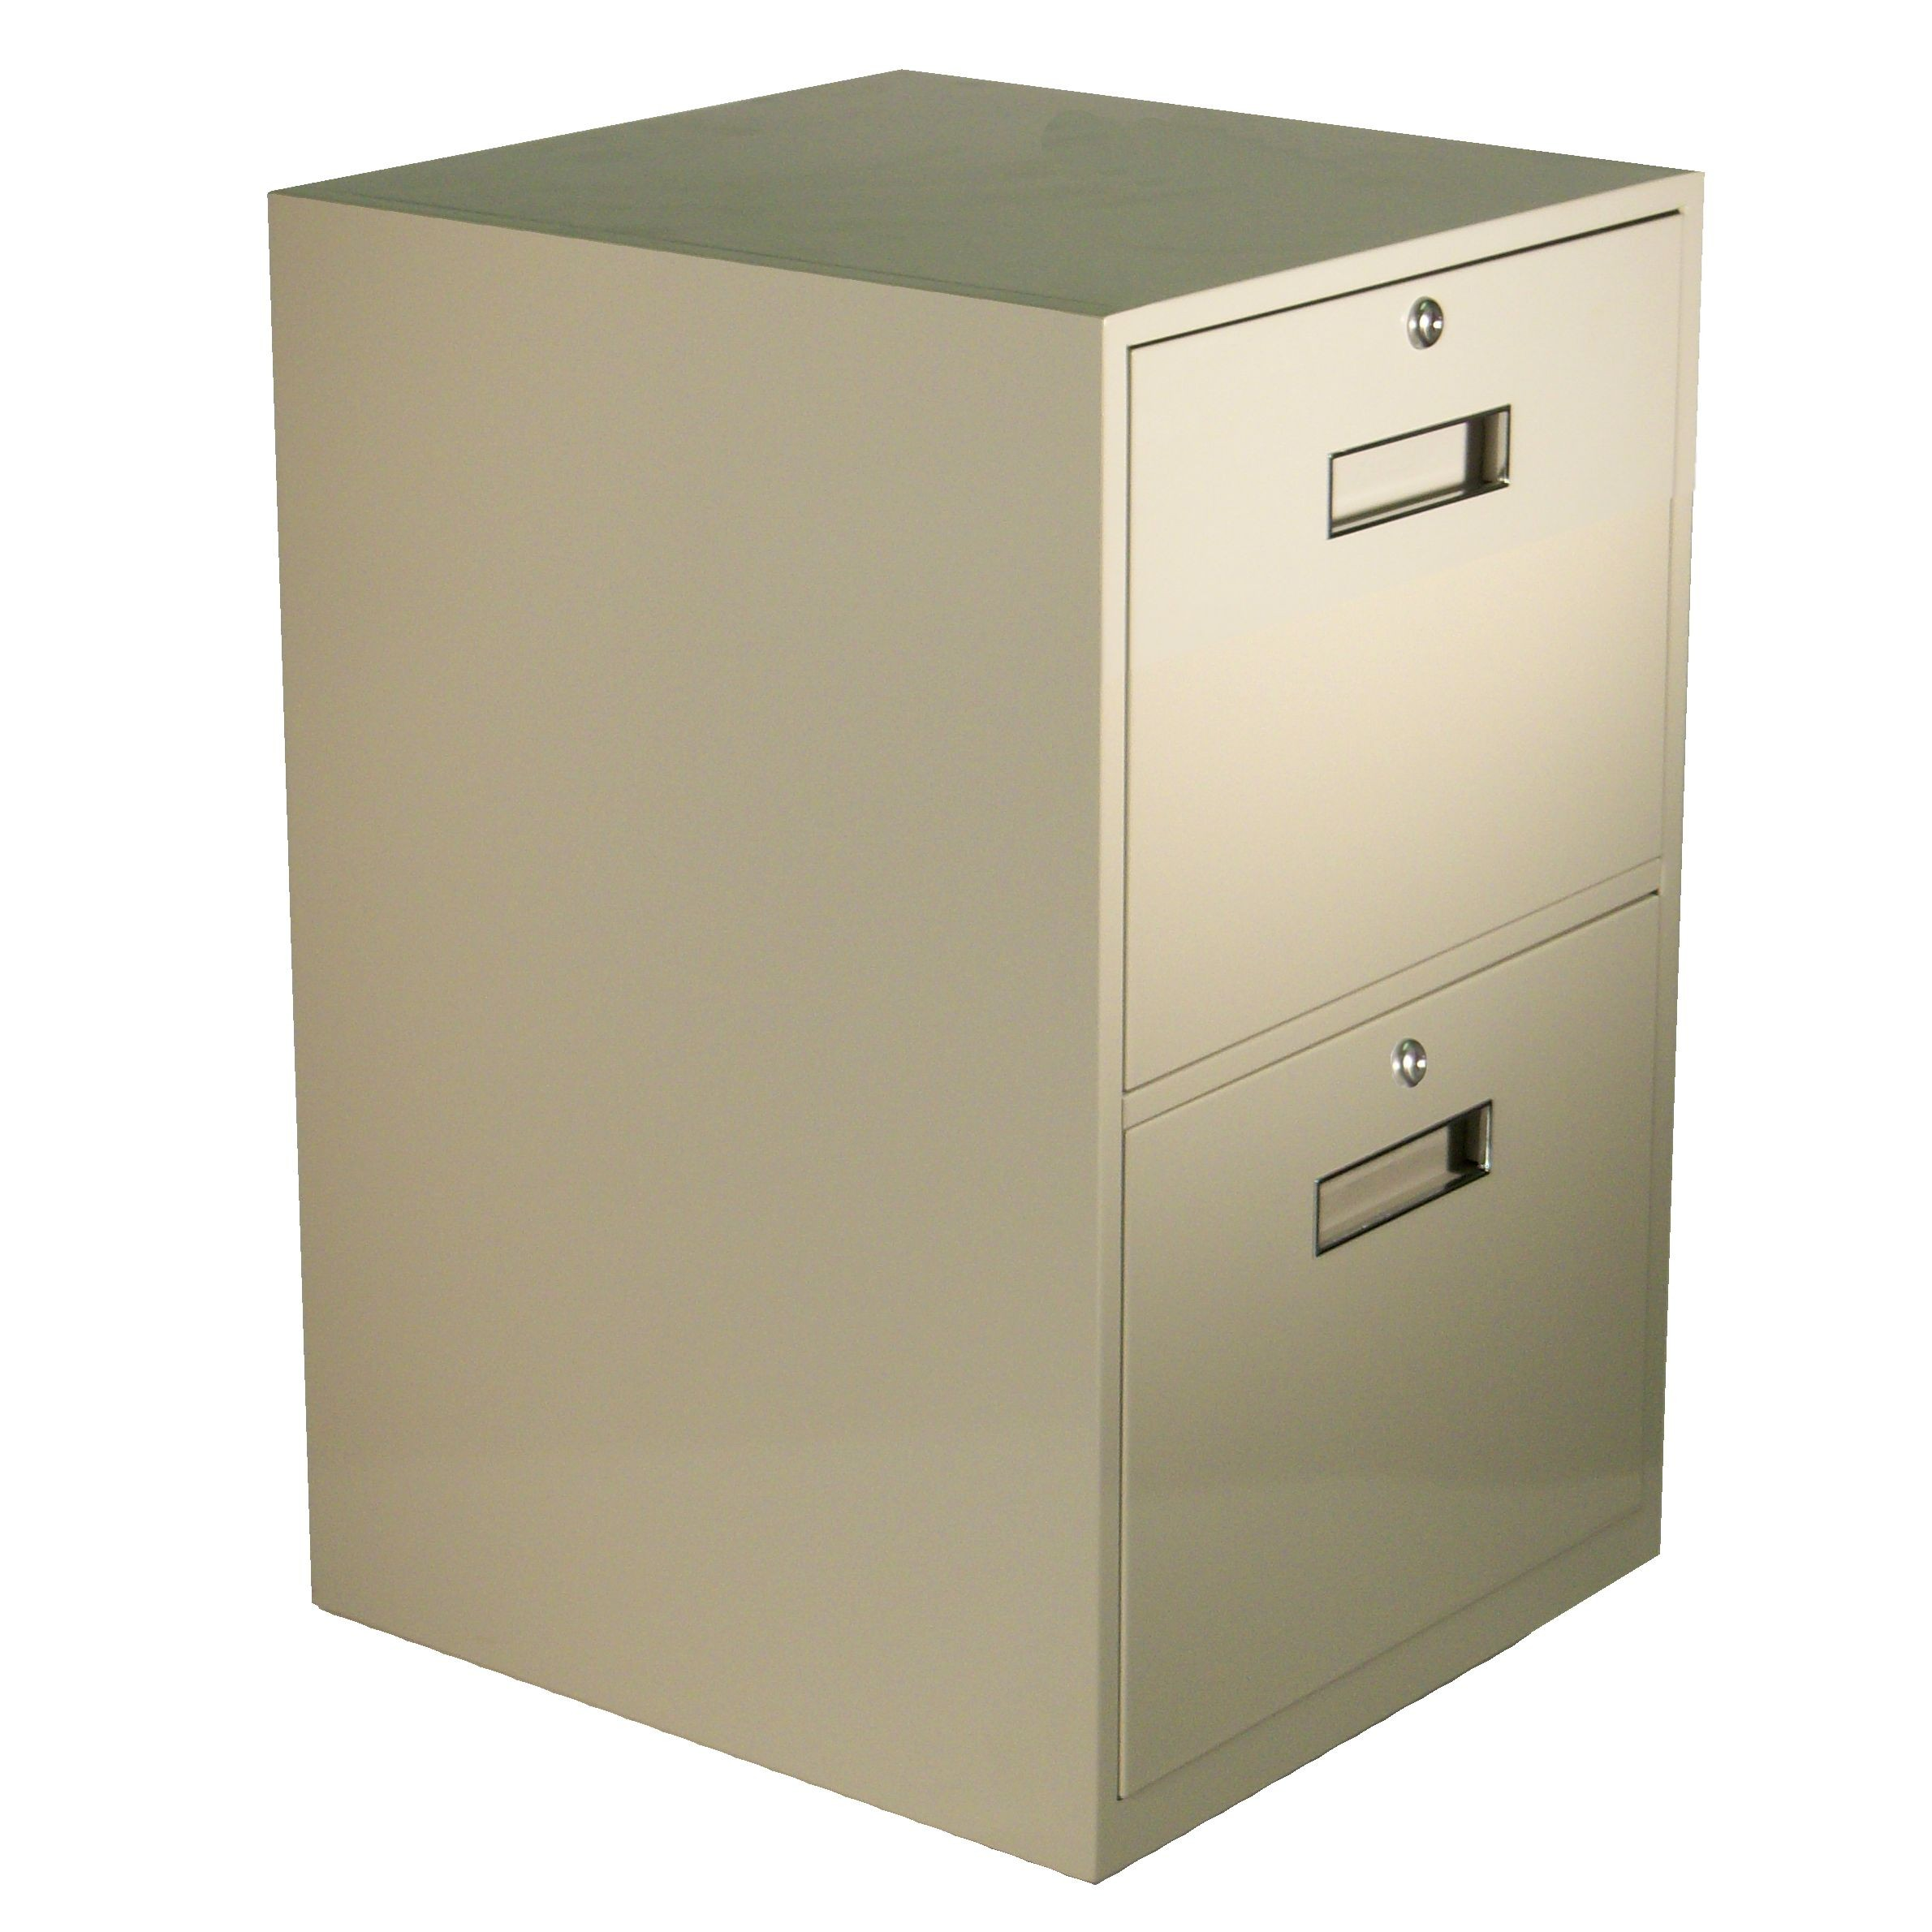 Fenco Silverline Lowboy Pedestal, (2) Legal Drawers